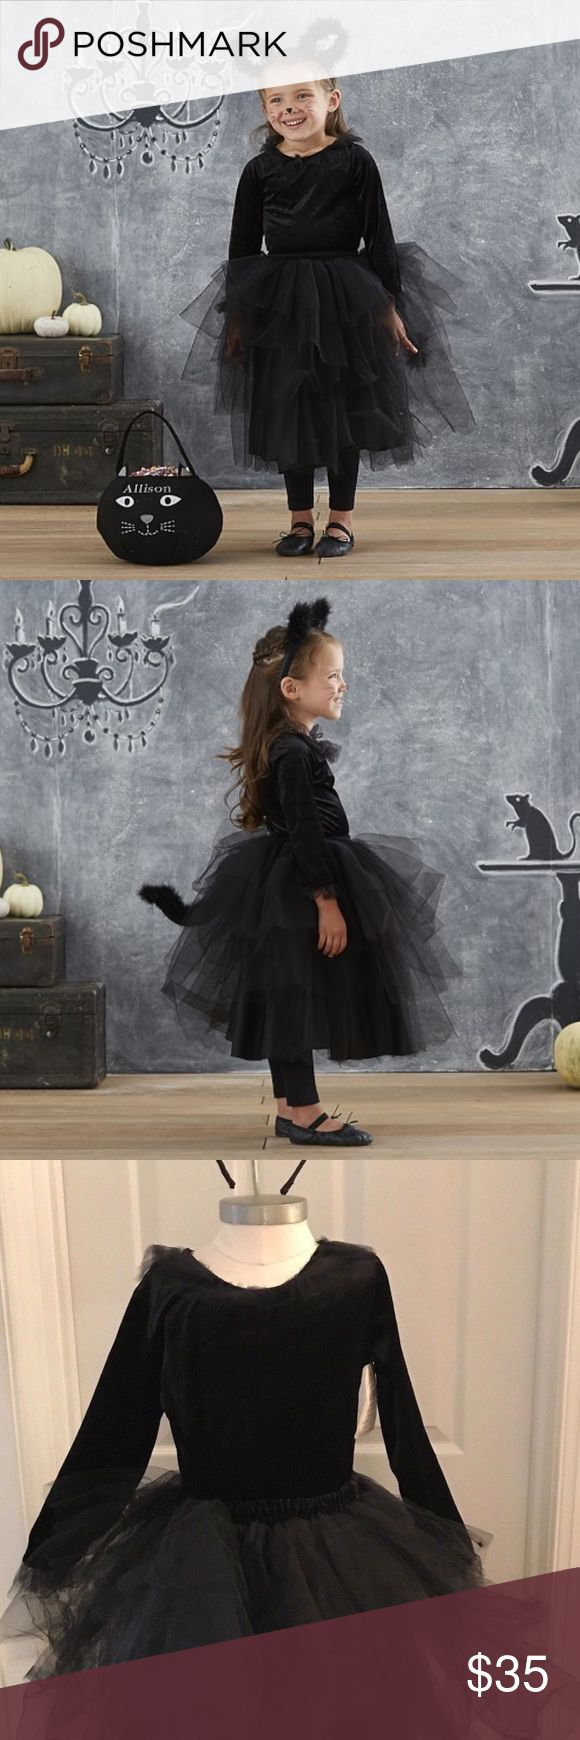 """Pottery Barn Kids Black Cat Tutu Costume Size 4-6 3 Piece Pottery Barn Kids Black Tutu Costume Kids Size 4-6.  Set includes Black Lined Layered Tulle Skirt, """"Velvet"""" Tulle trimmed longs sleeve top, and Fuzzy feather cat years with pink interior.  Worn once.  Excellent condition. Pottery Barn Kids Costumes Halloween"""